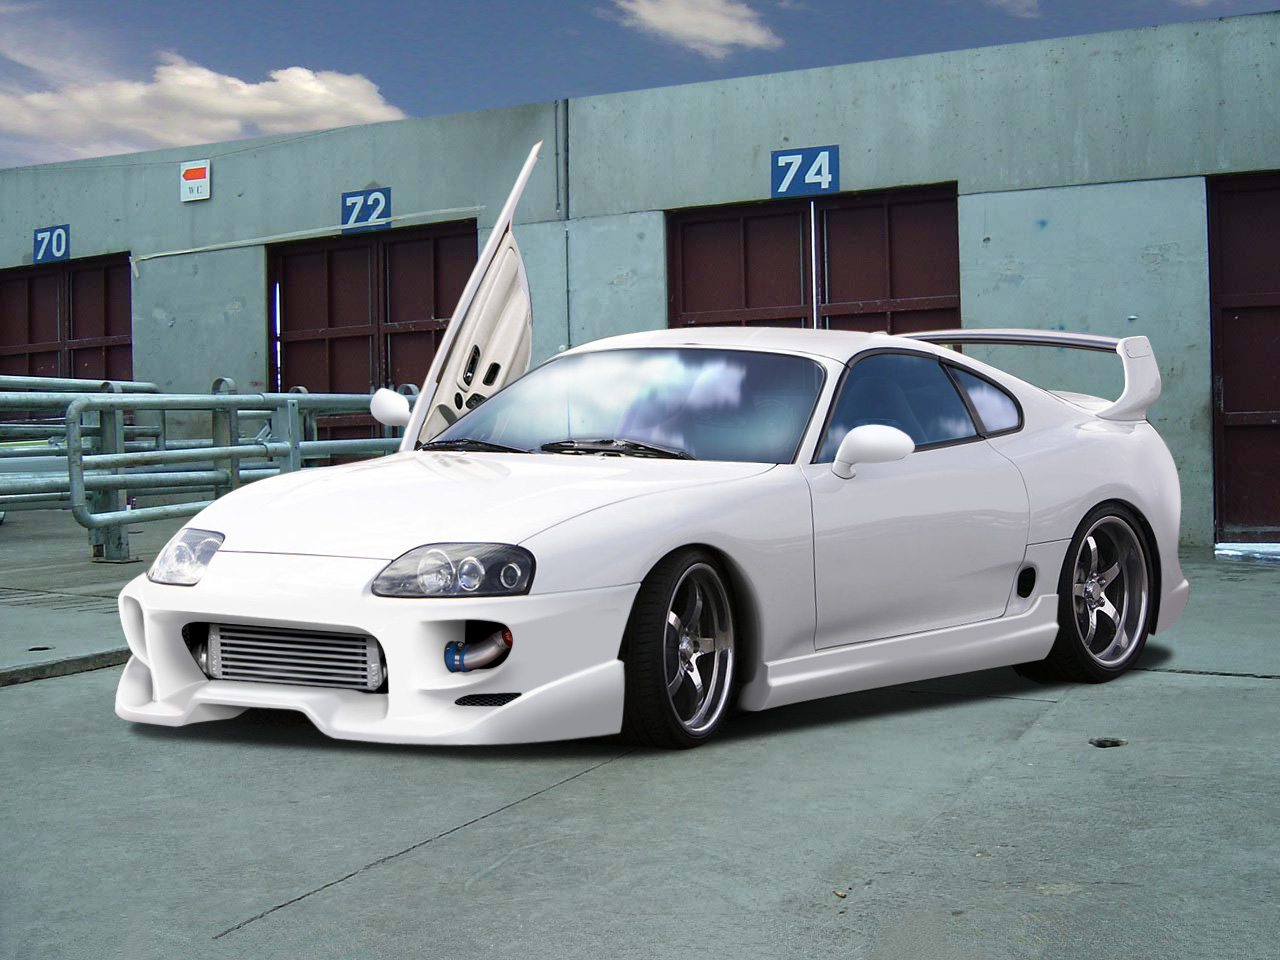 Jdm Cars For Sale >> HD Cars Wallpapers: Toyota Supra